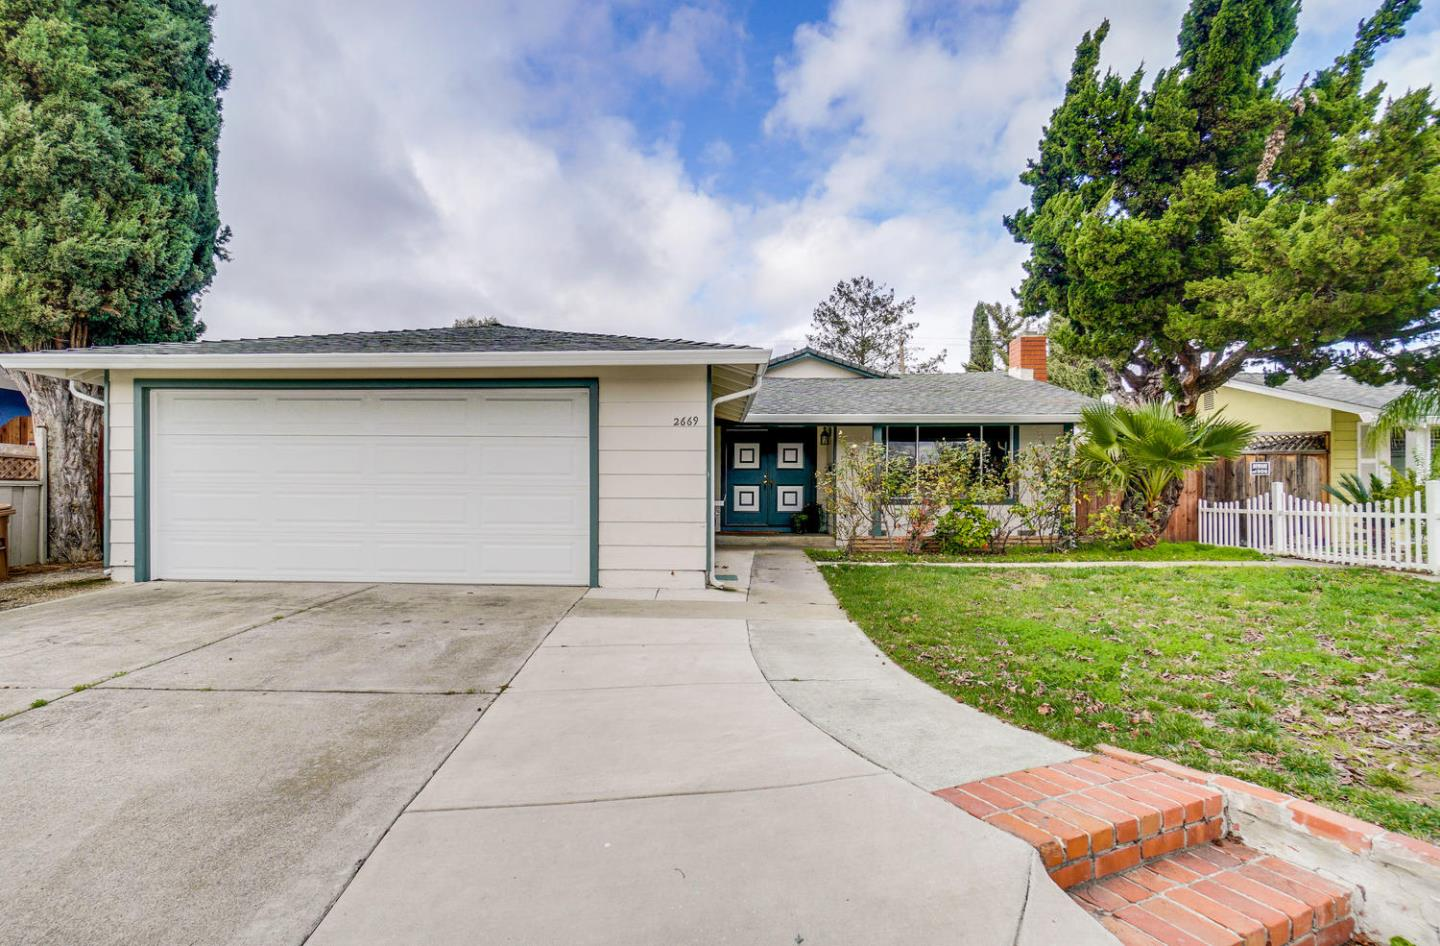 2669 Kendrick CIR, SAN JOSE, California 95121, 3 Bedrooms Bedrooms, ,2 BathroomsBathrooms,Residential,For Sale,2669 Kendrick CIR,ML81780656